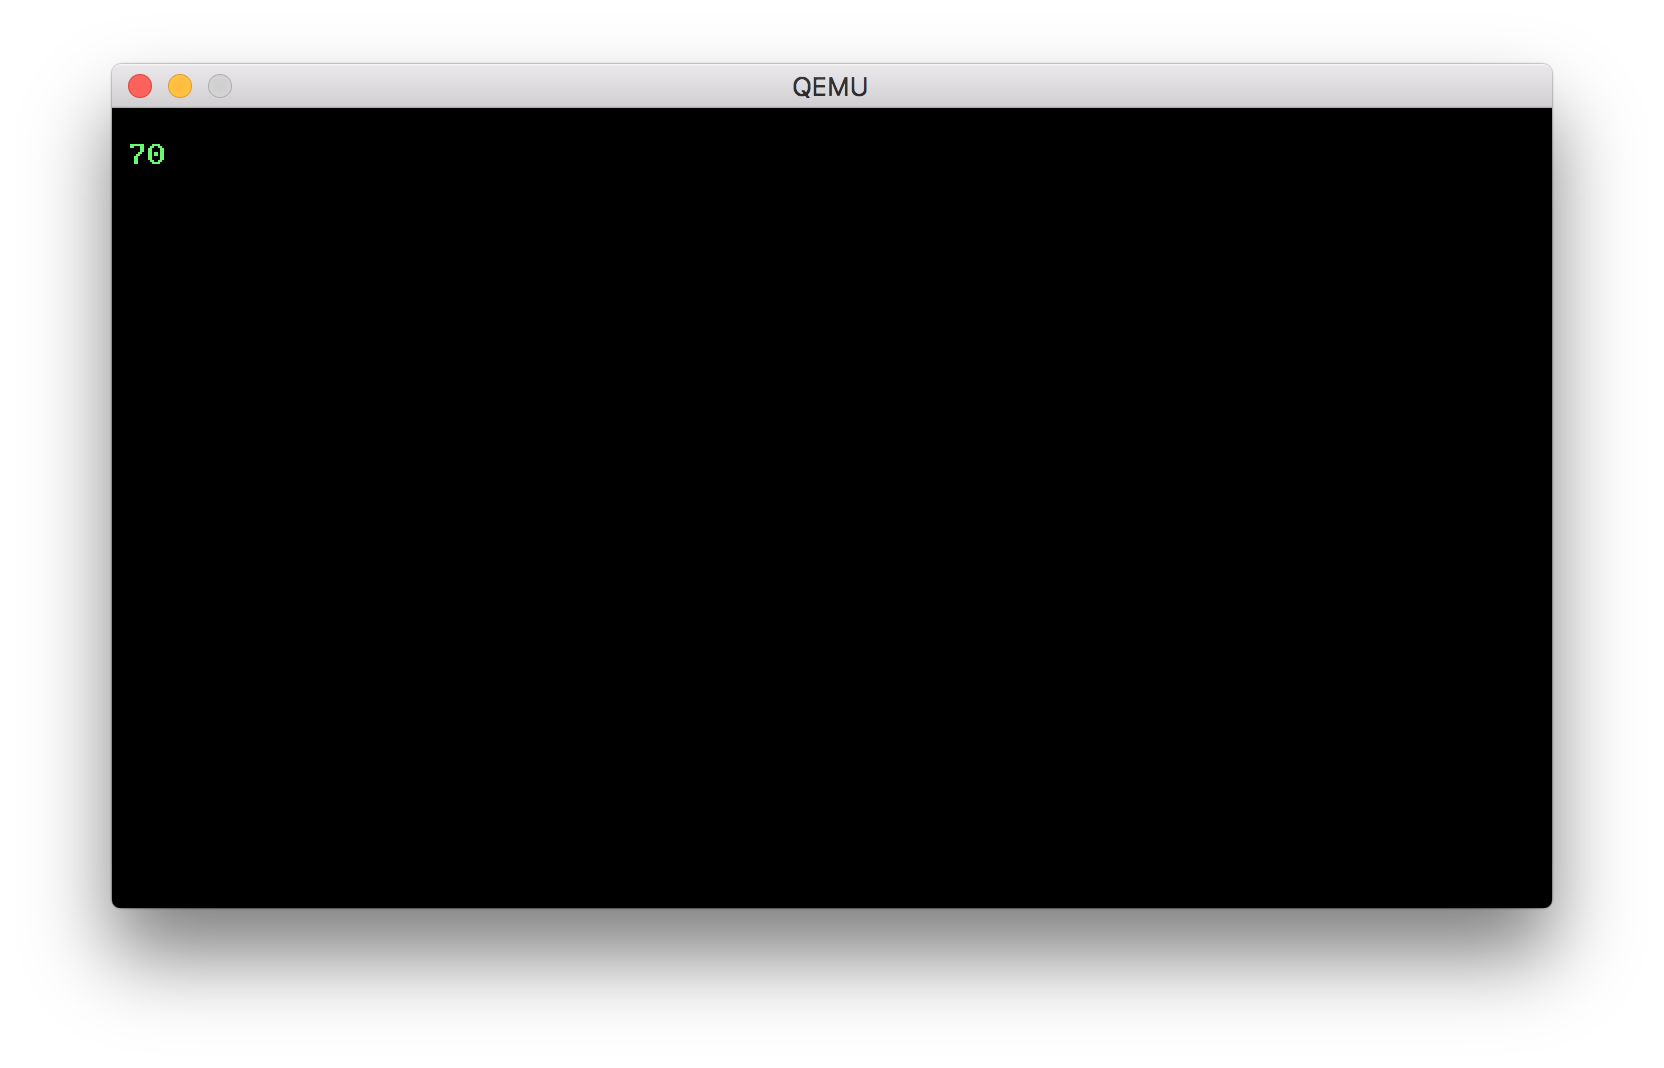 Input loop QEMU screenshot